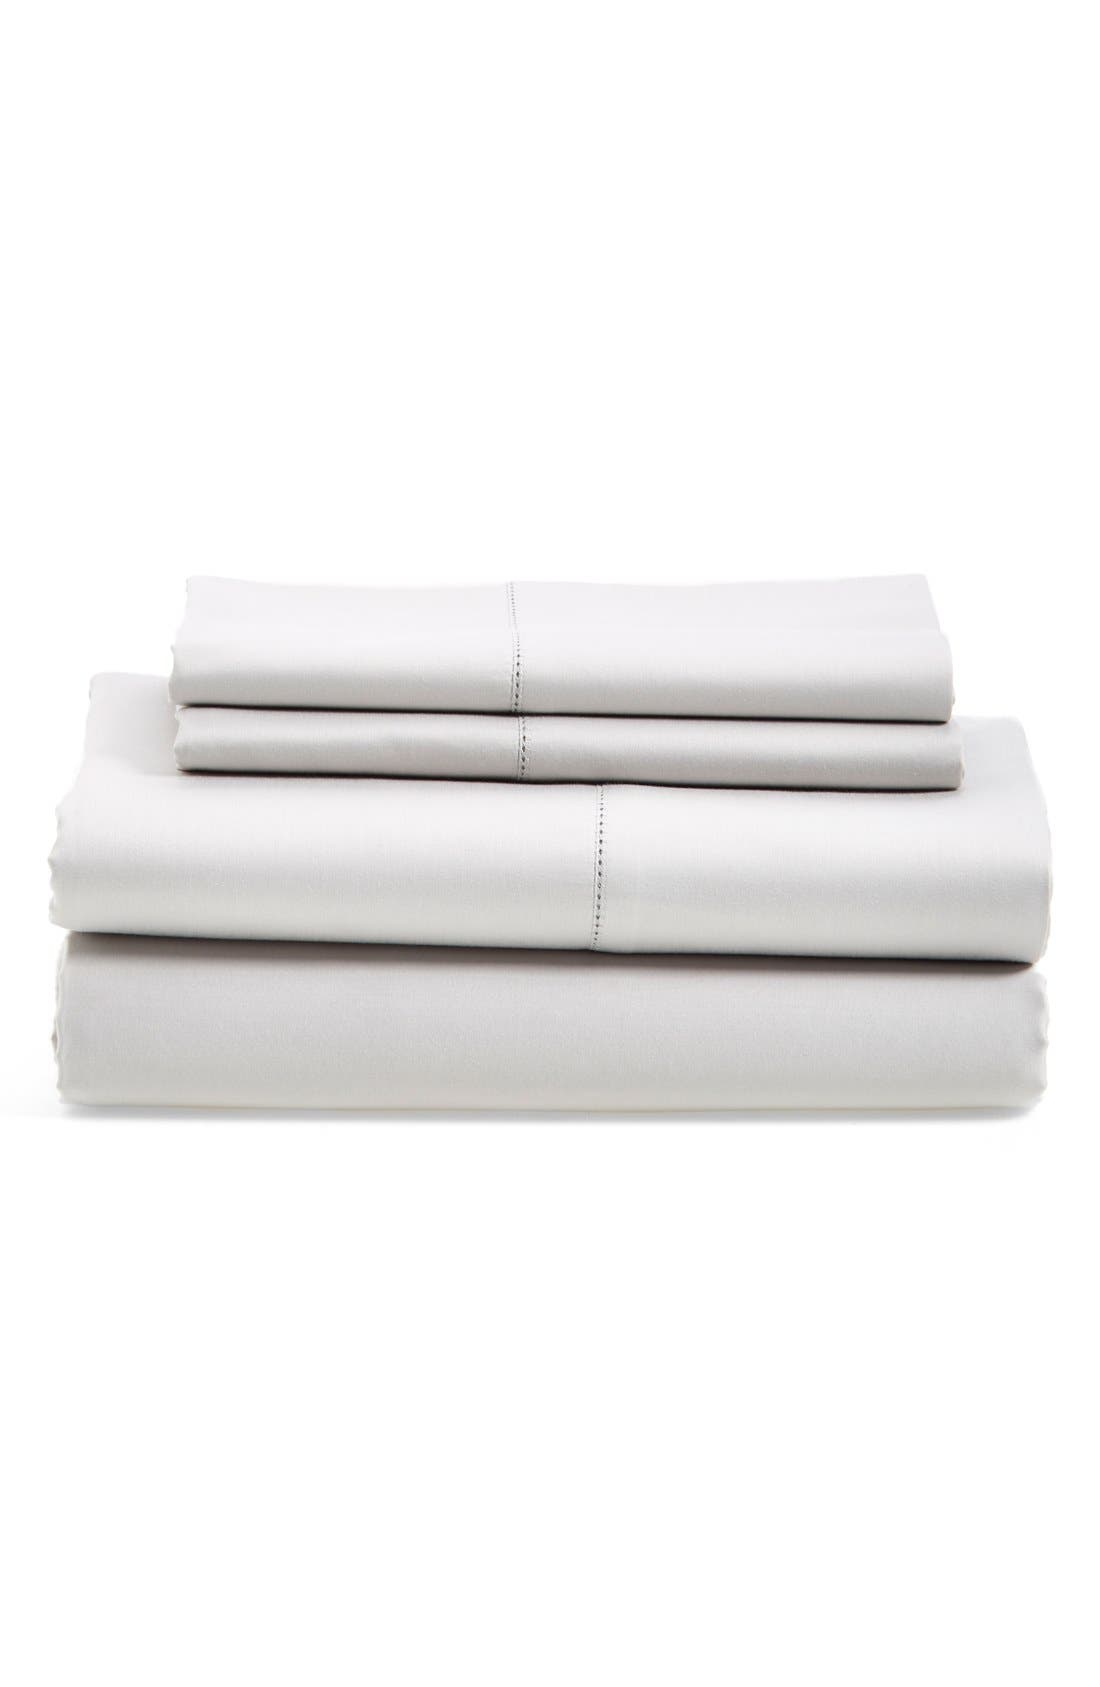 600 Thread Count Egyptian Cotton Single Sheets,                         Main,                         color, GREY VAPOR